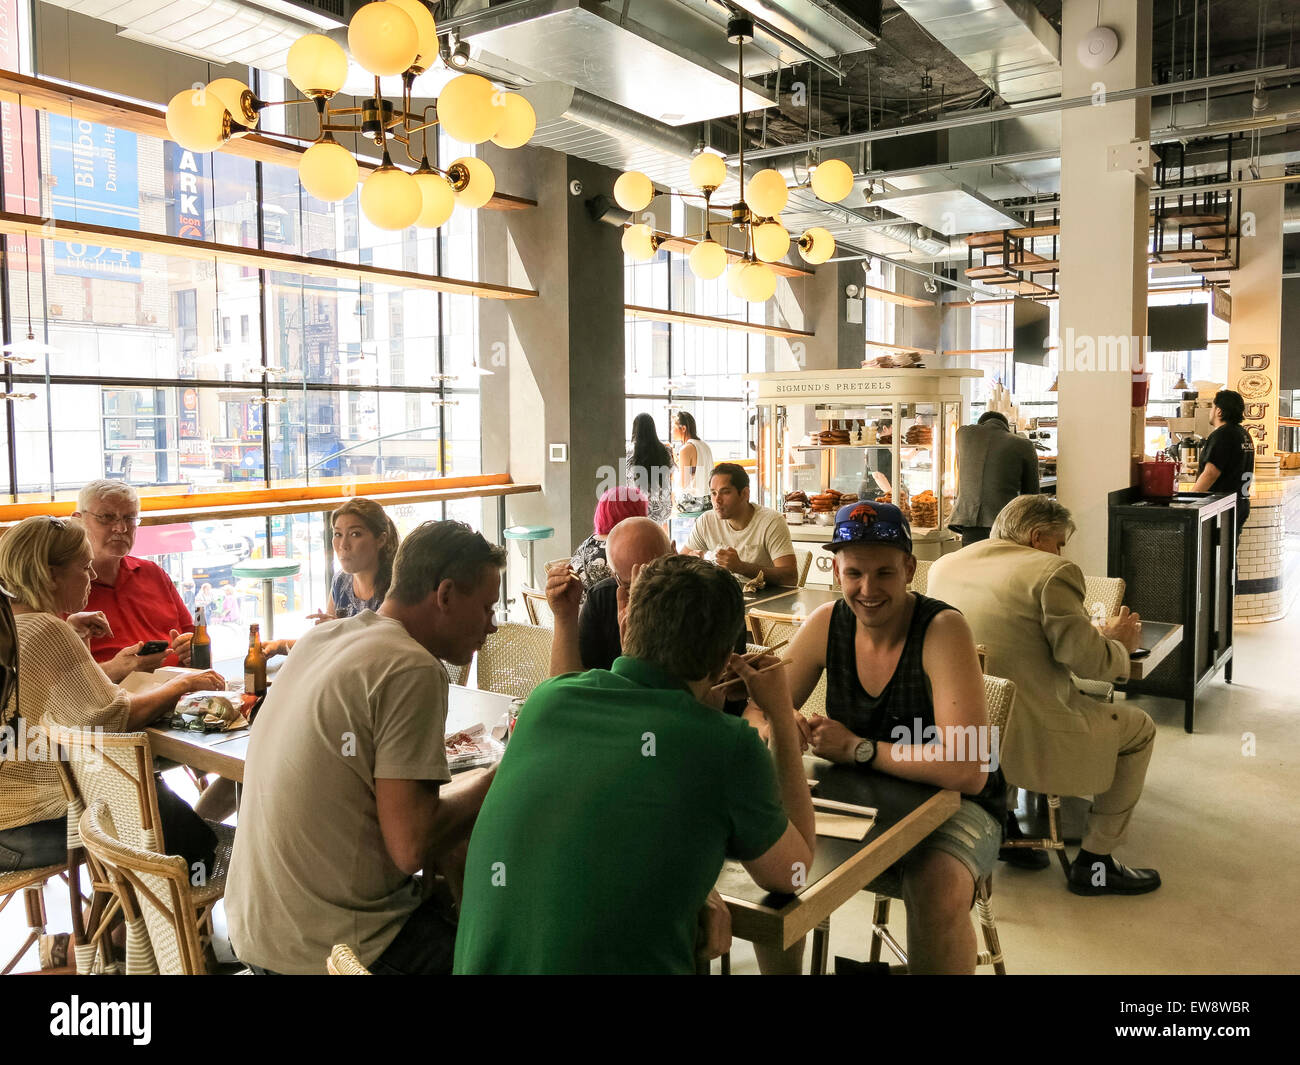 City Kitchen Food Market Times Square Nyc Stock Photo